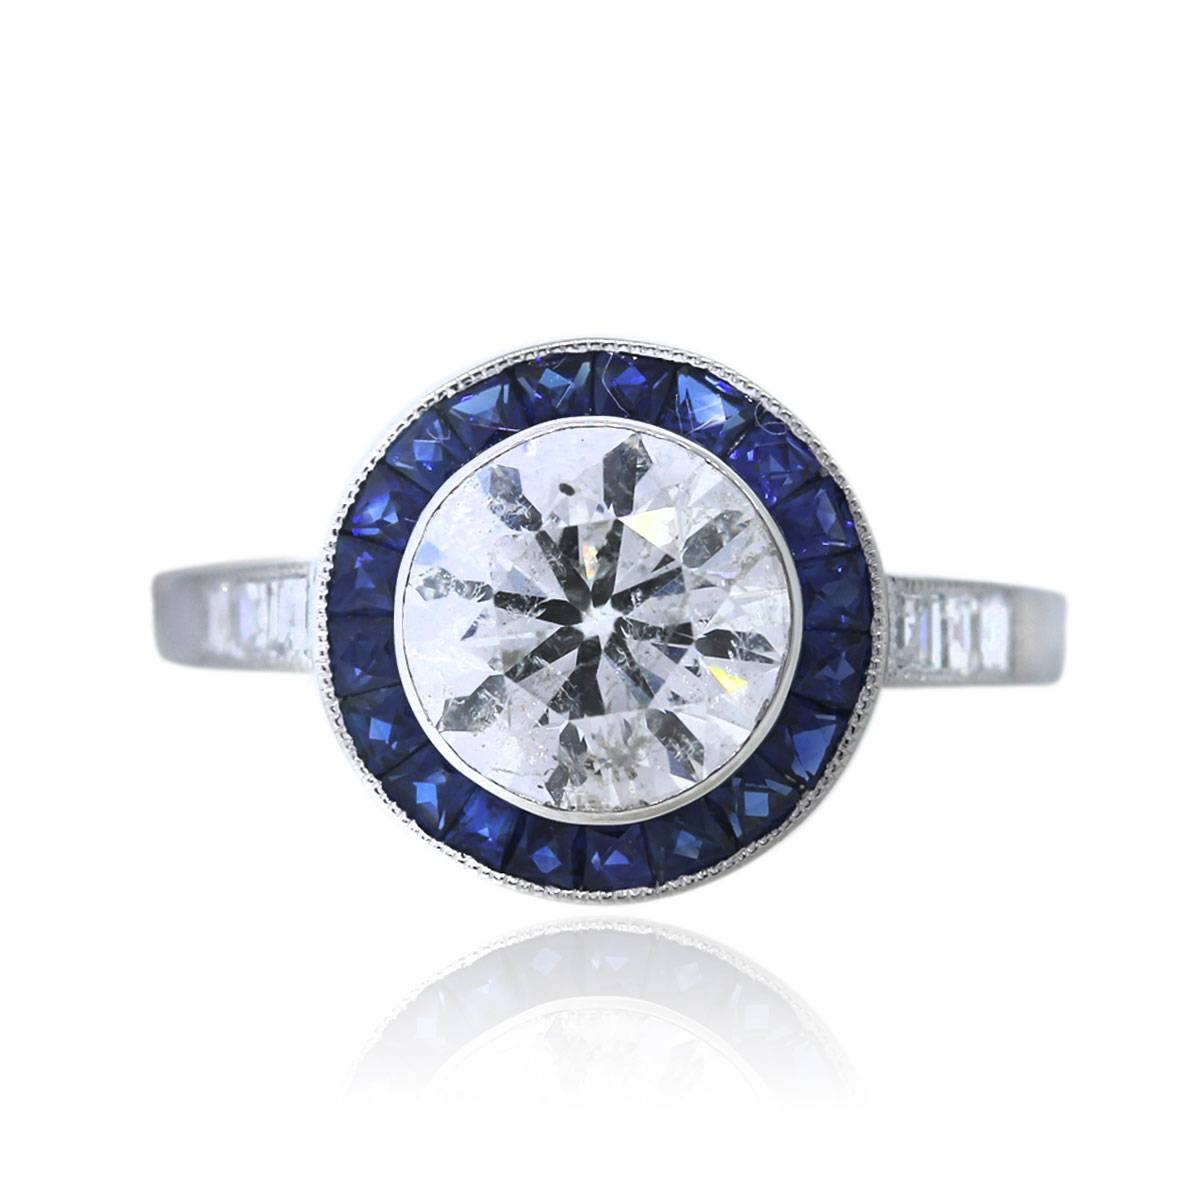 Platinum 2 Carat Round Diamond And Sapphire Engagement Ring Boca Raton Intended For Engagement Rings With Sapphires (View 11 of 15)